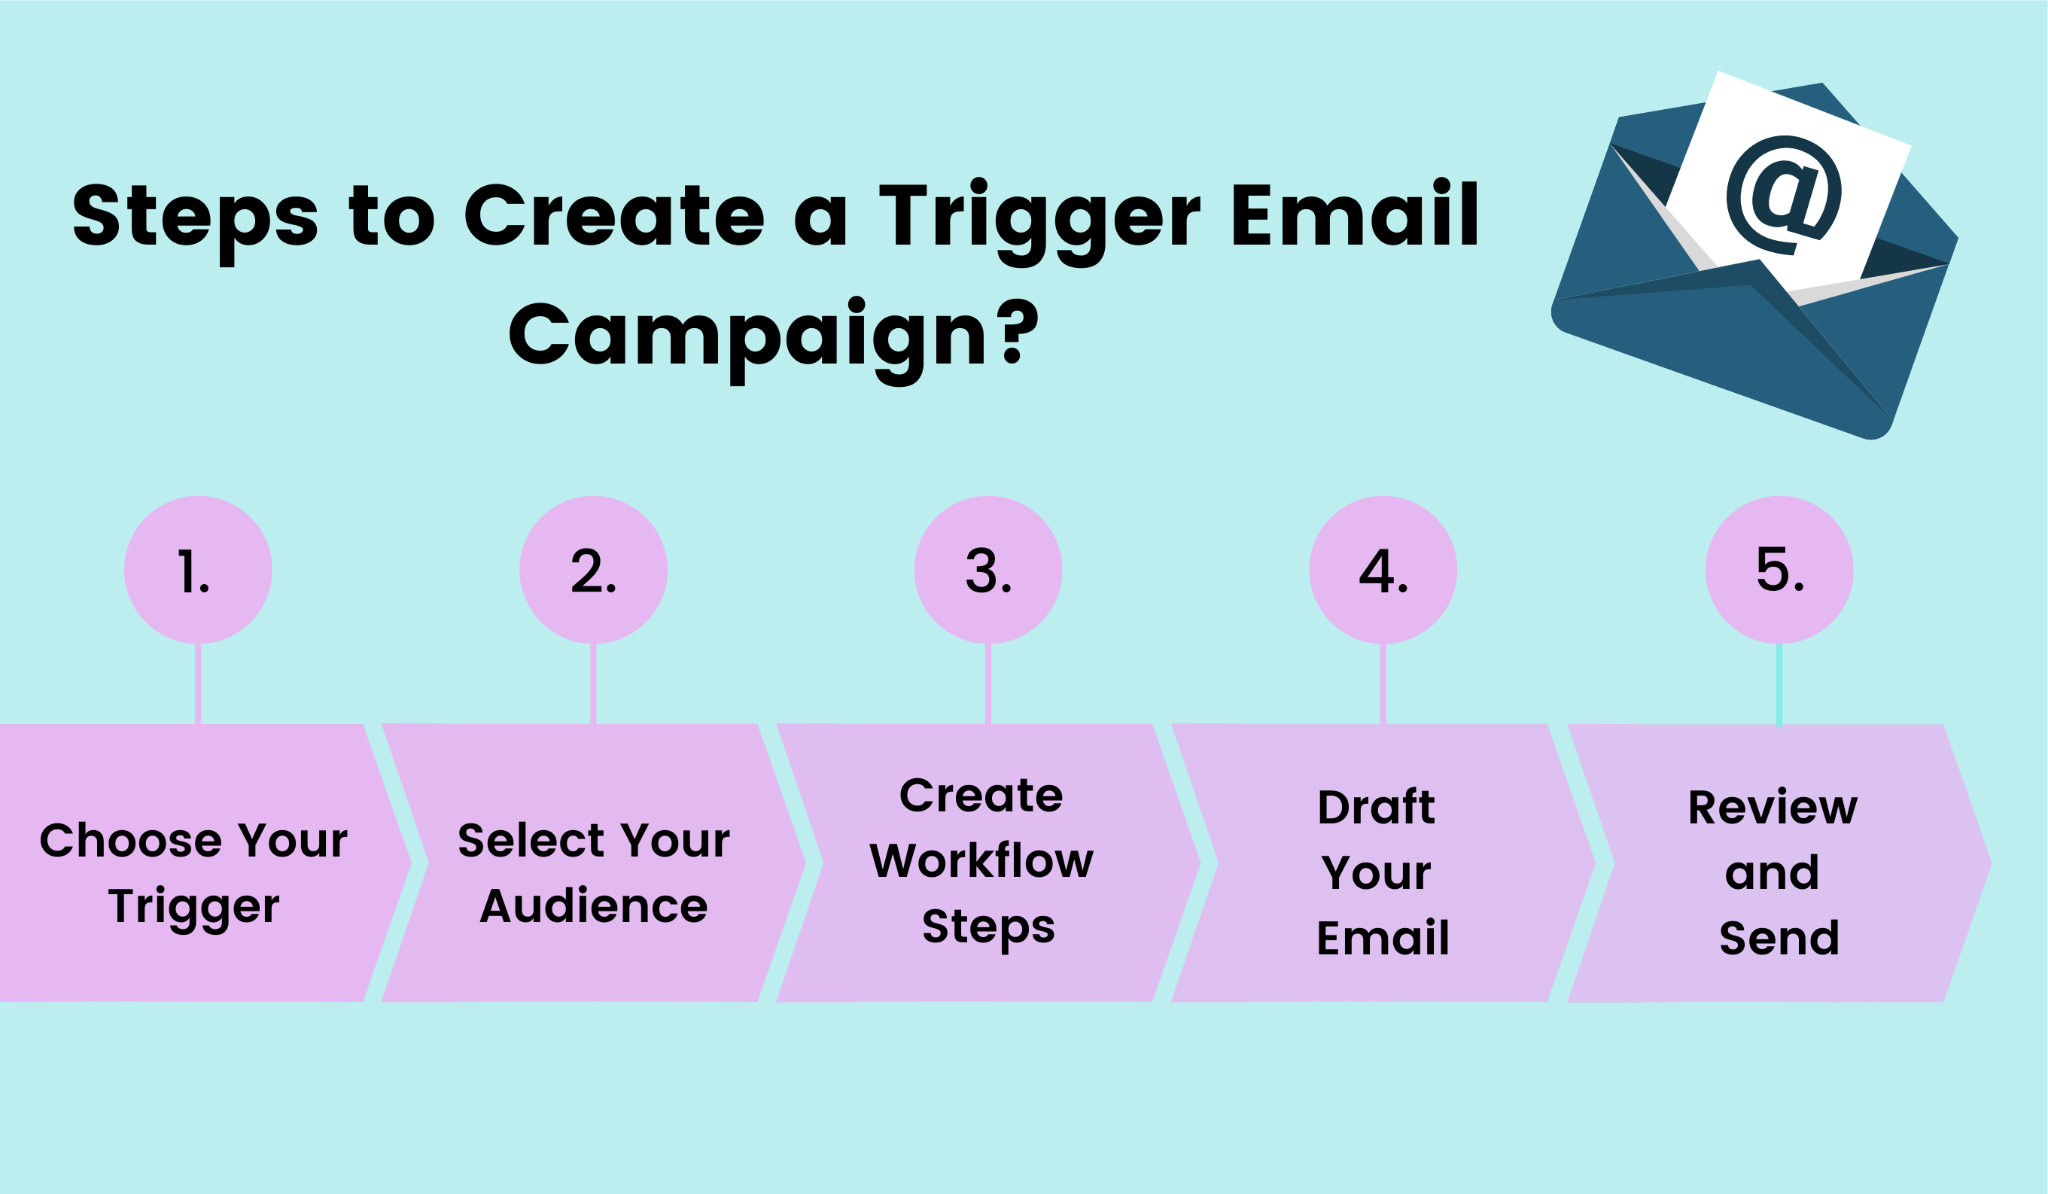 5 easy steps to create a trigger email.